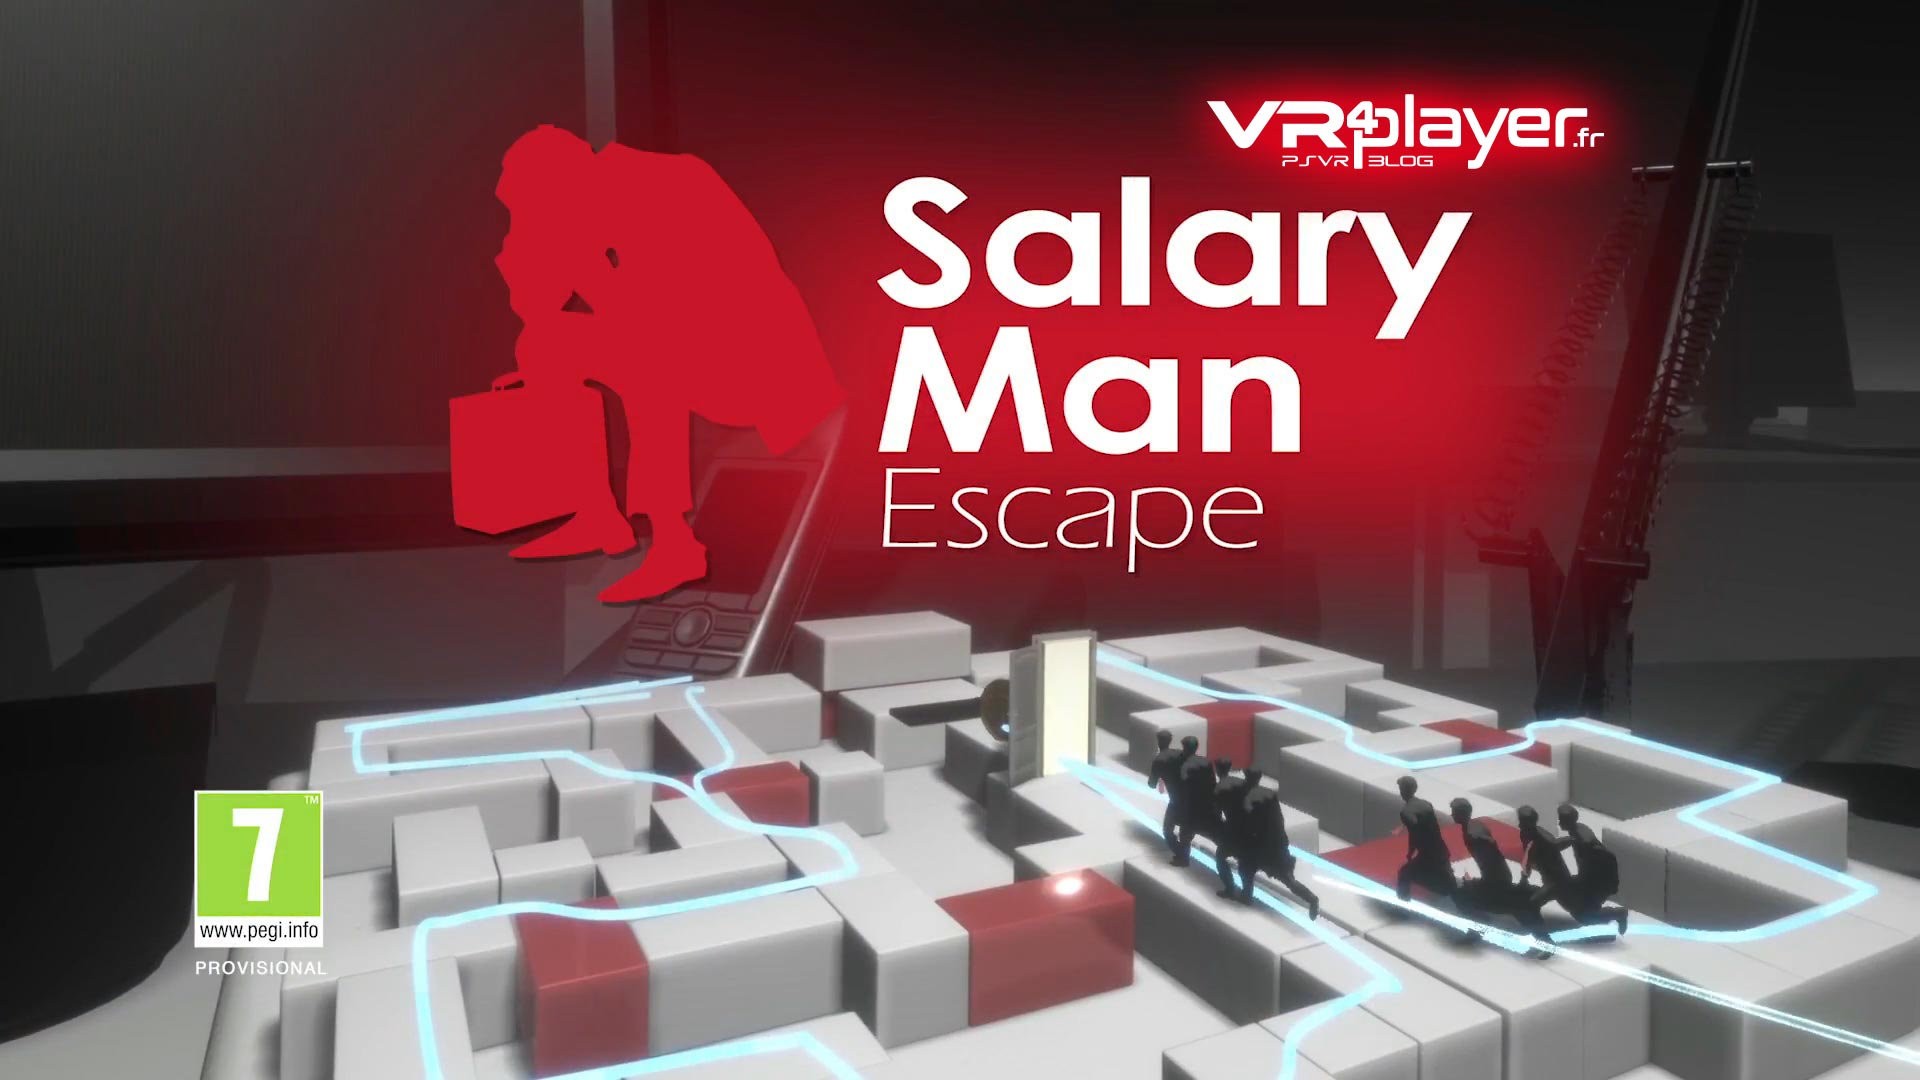 SalaryMan Escape PSVR VR4Player